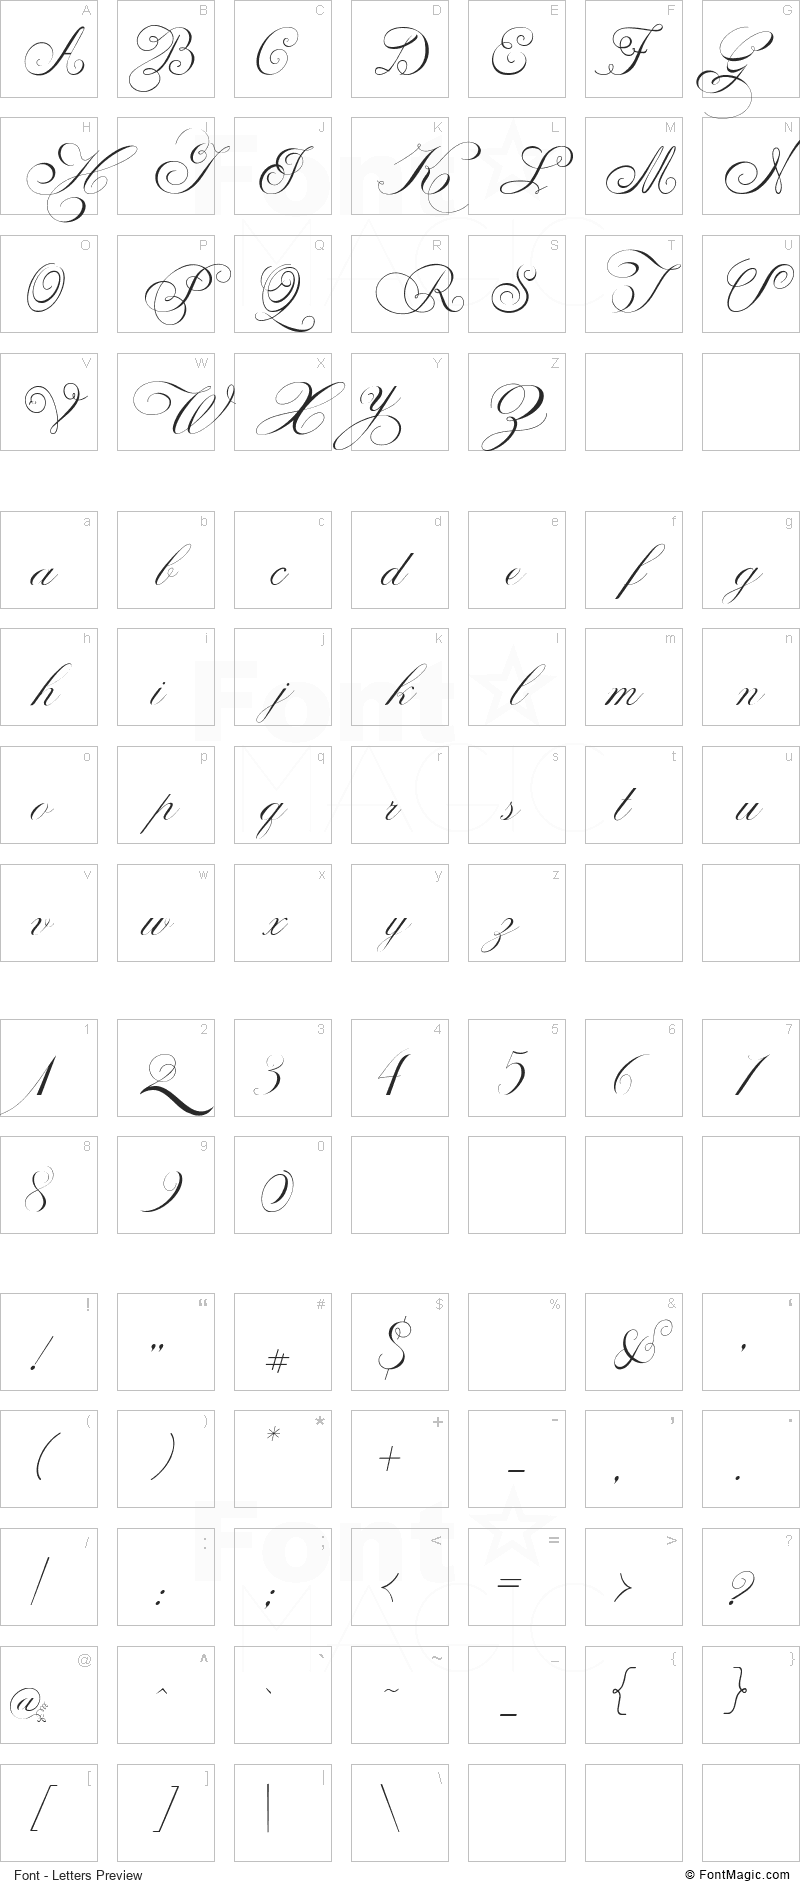 Penabico Font - All Latters Preview Chart